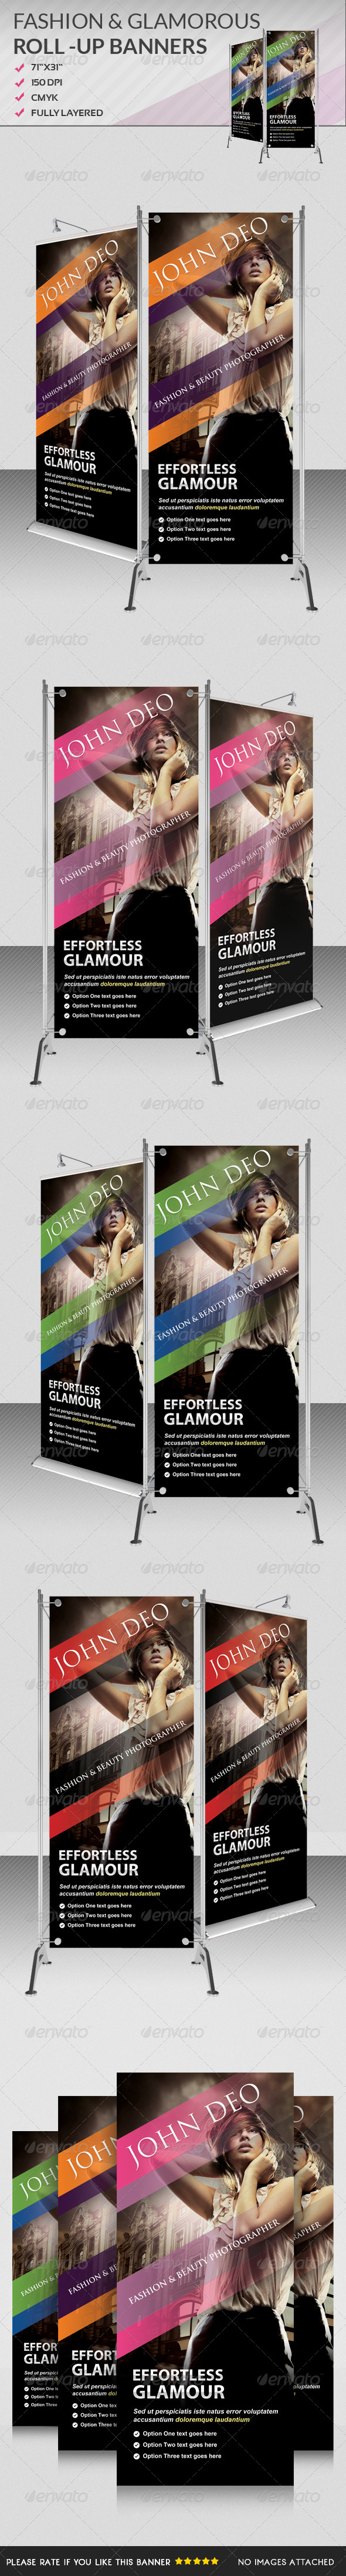 Multiporpose Glamorous Roll Up Banners II - Signage Print Templates